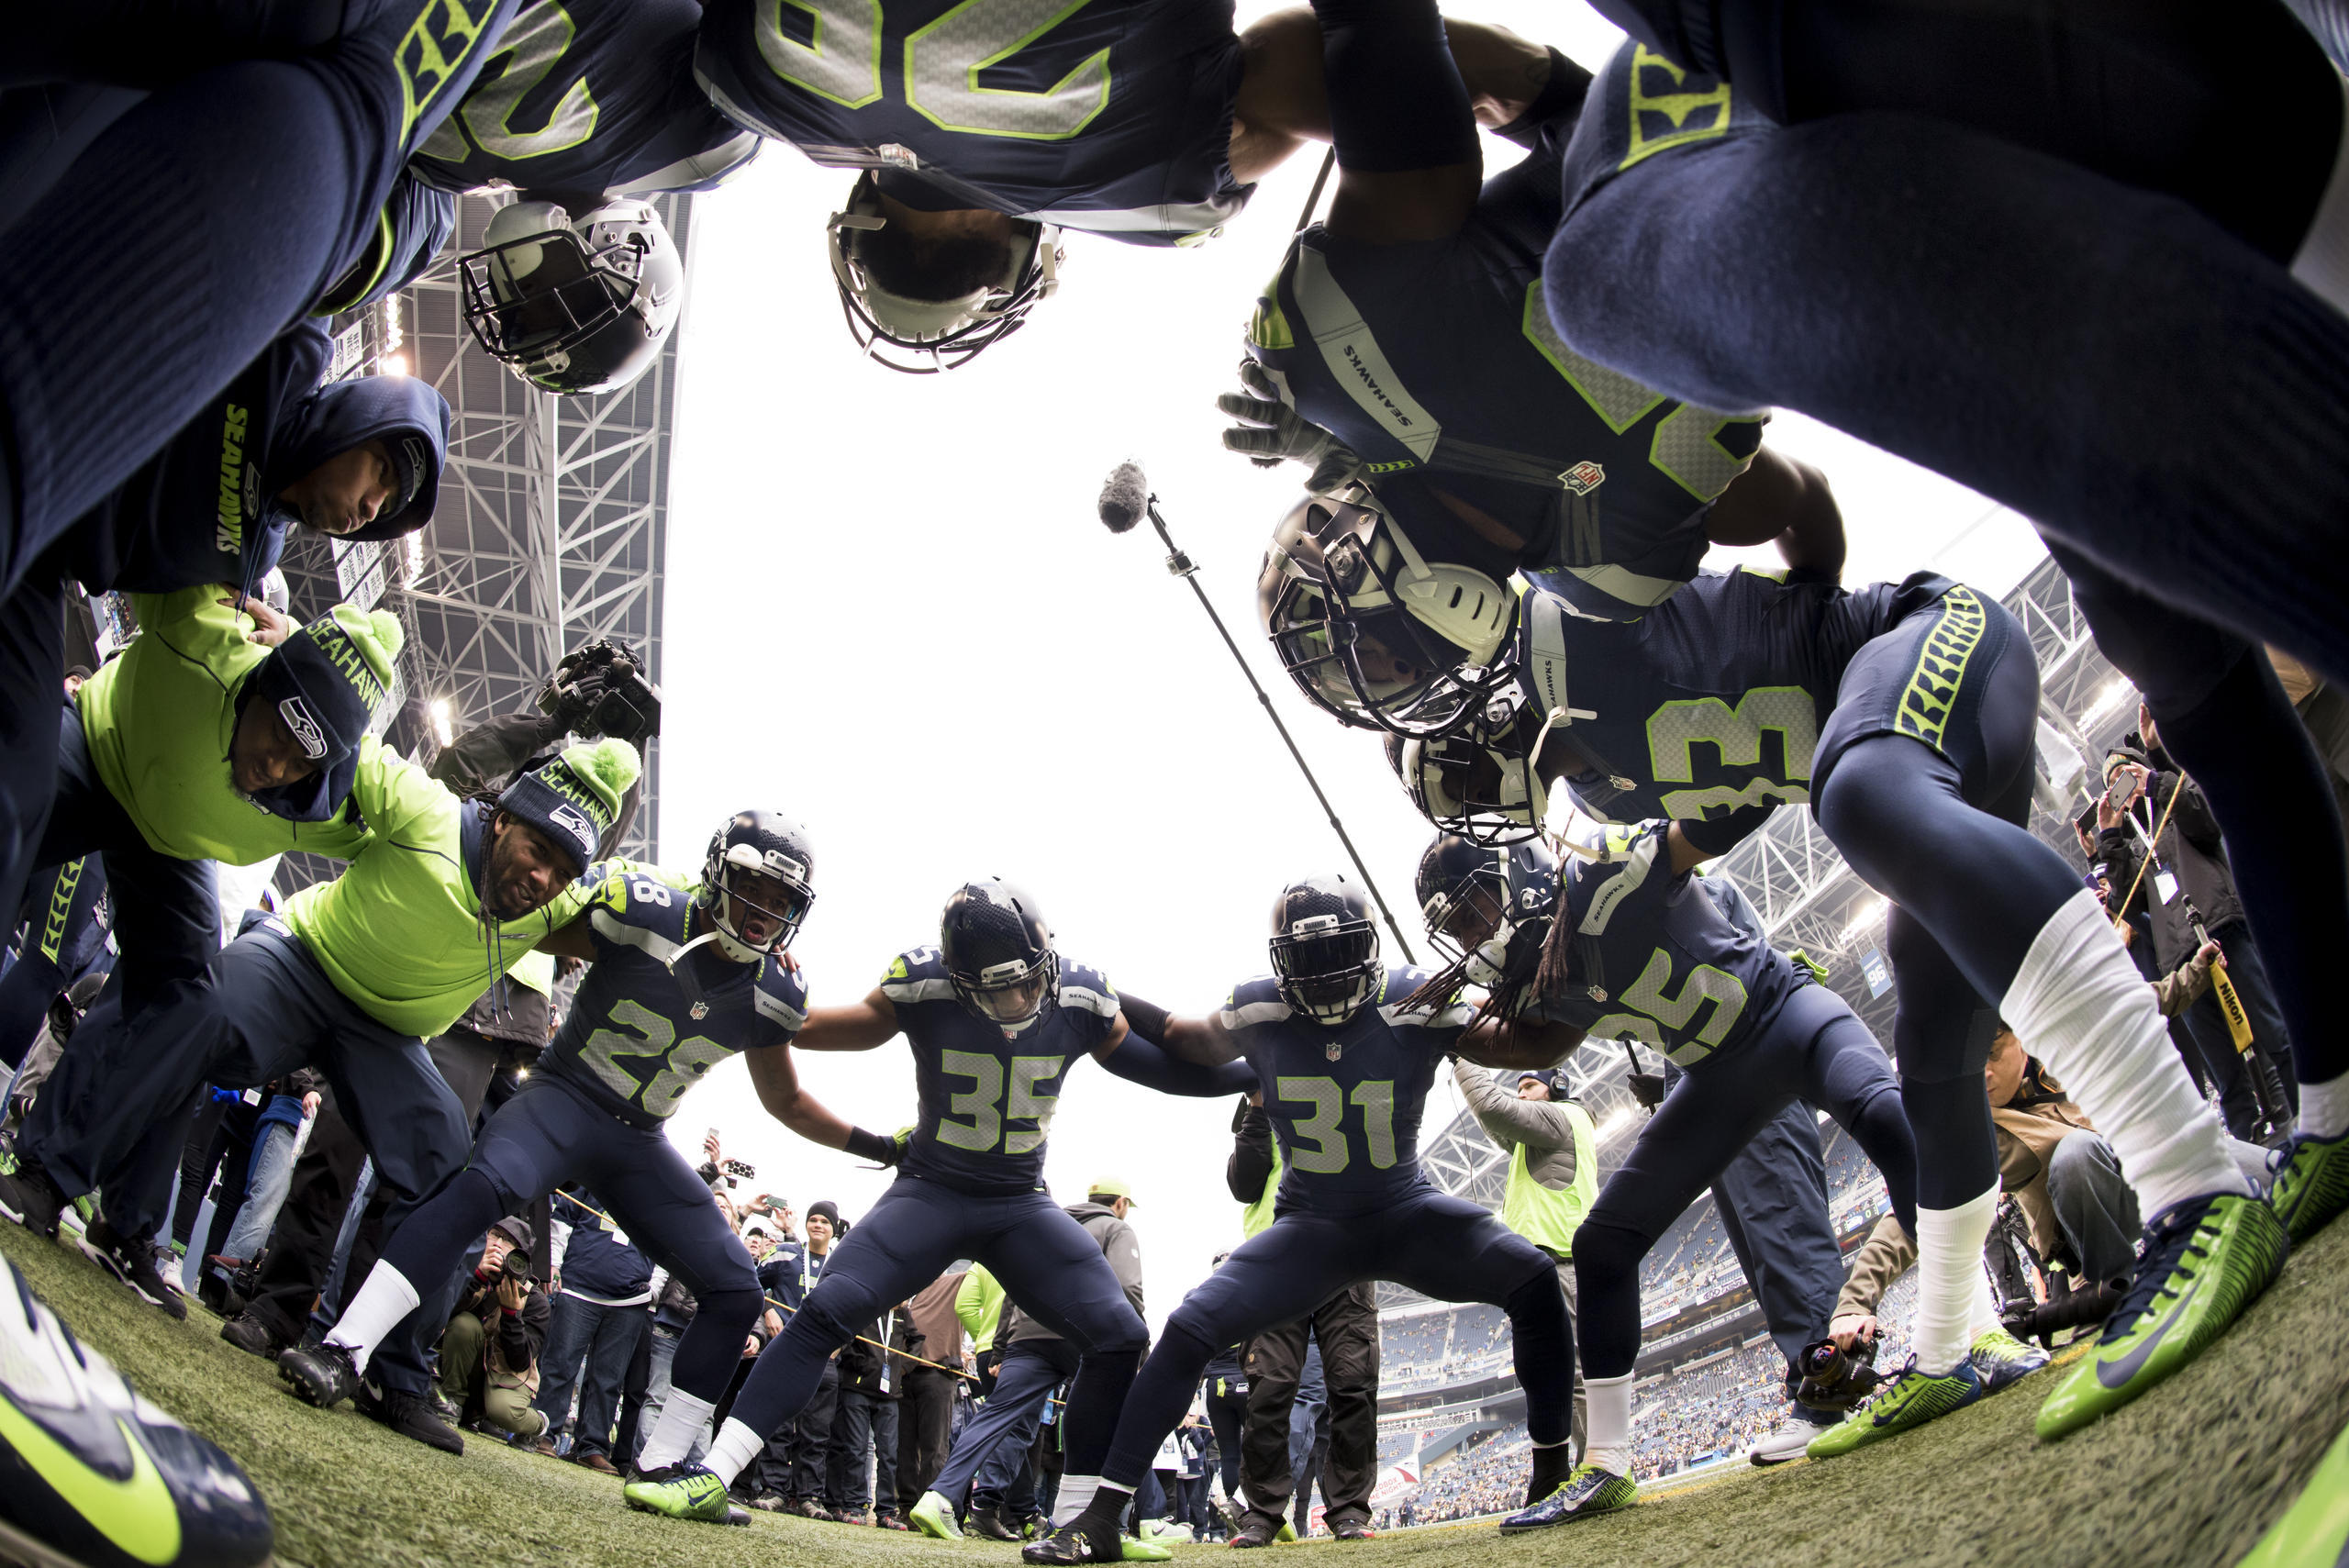 Defensive backs take part of their traditional pregame huddle before taking the field for warmups.